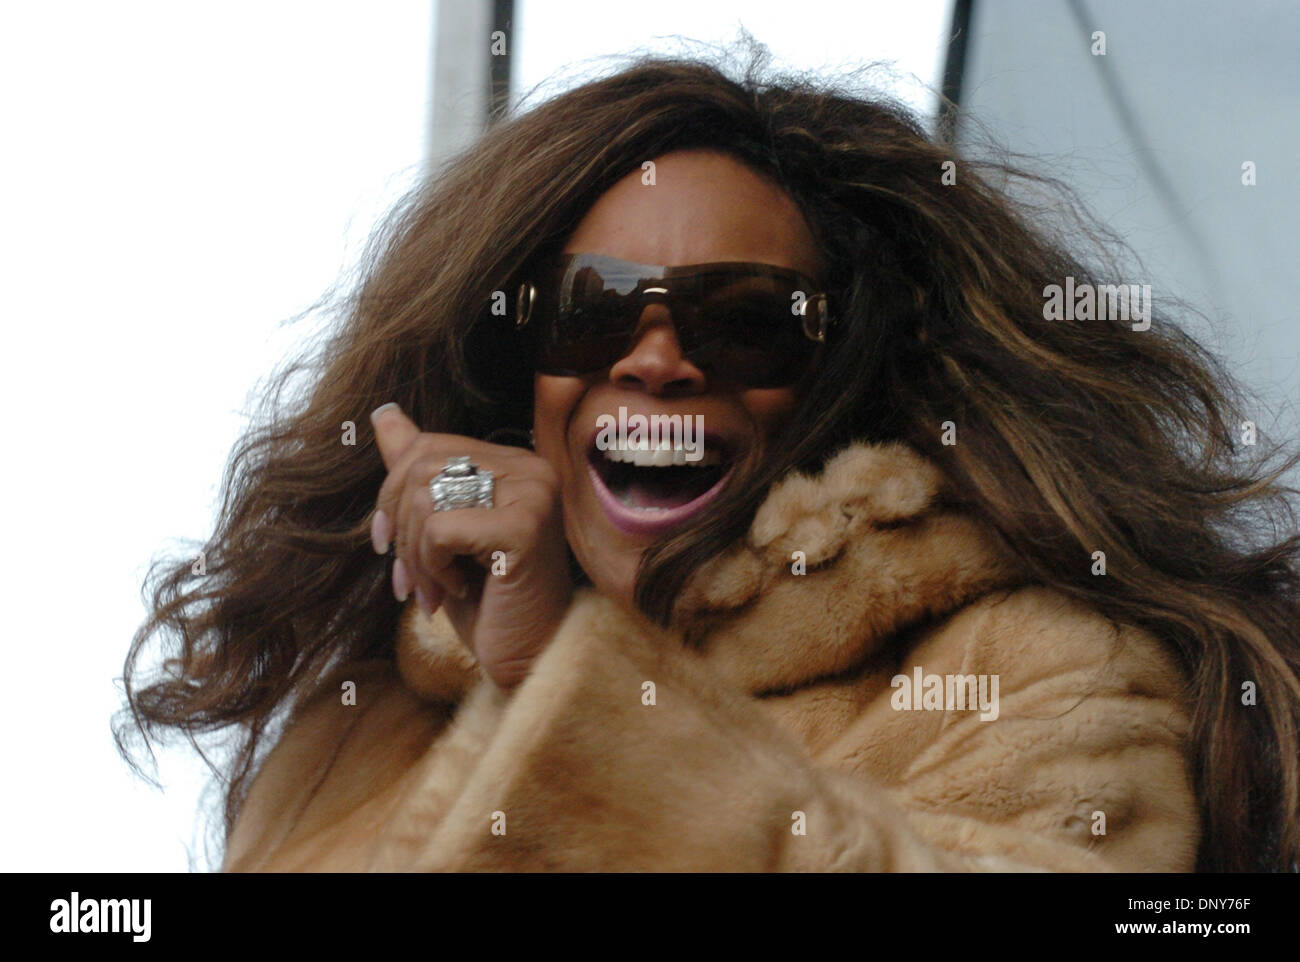 Jan 16, 2006; Manhattan, New York, USA; Radio personality WENDY WILLIAMS speaks as thousands of members and supporters Stock Photo